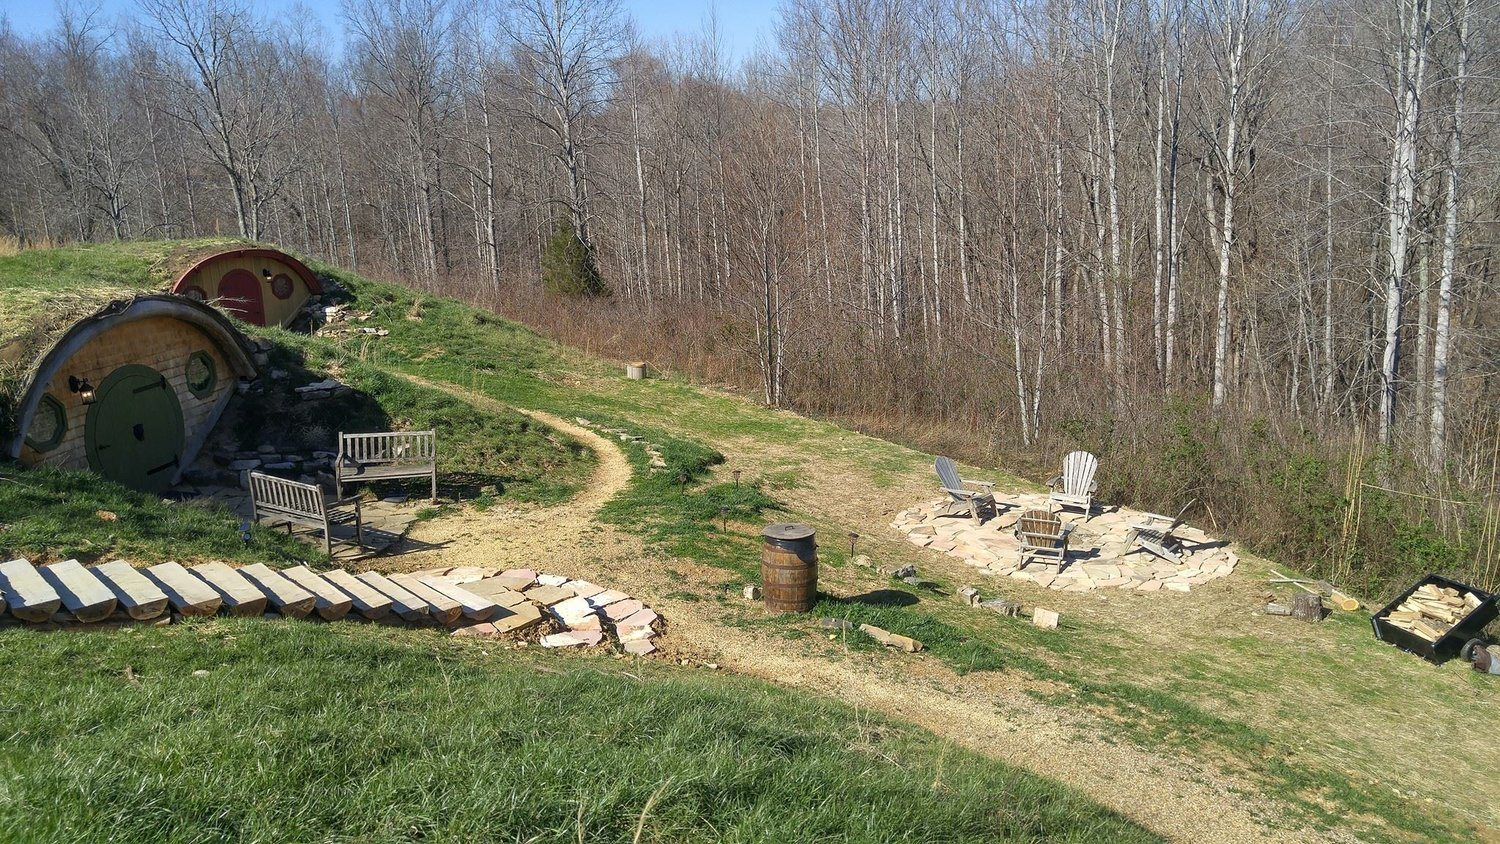 Explore the property by day, and come nightfall, build a fire in the firepit as you marvel at the quiet location and beautiful sounds of nature.